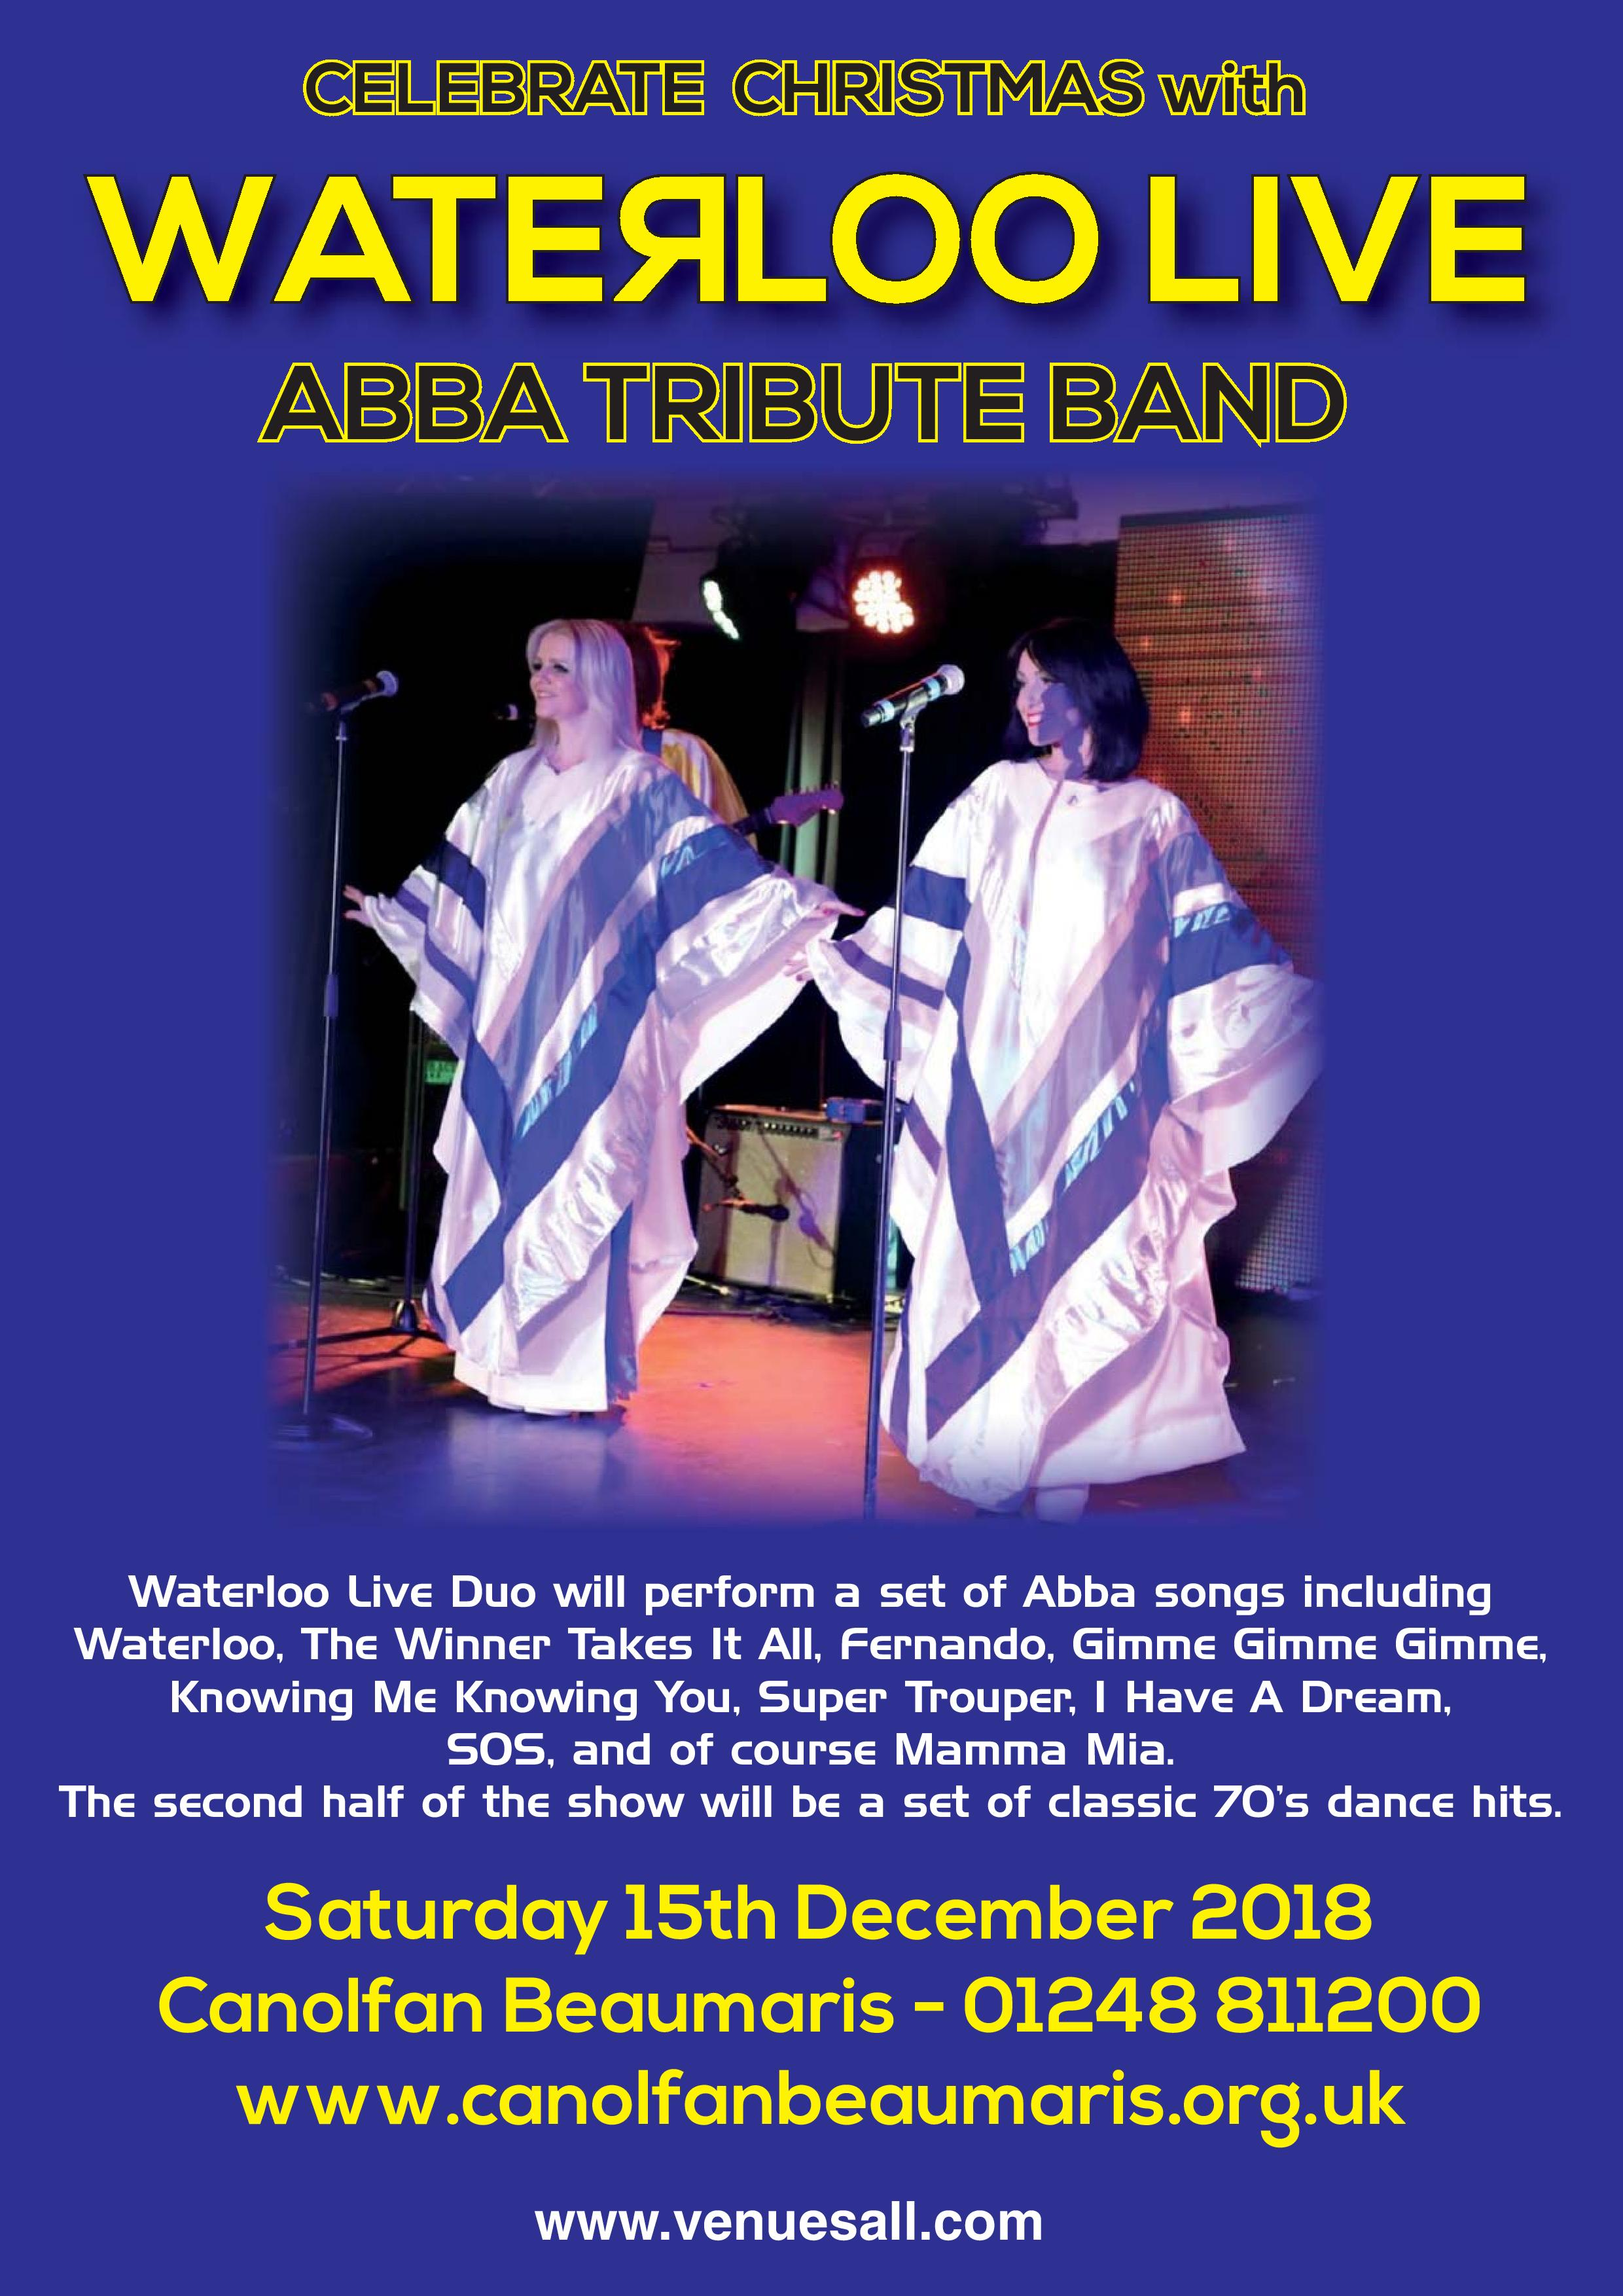 Celebrate Christmas With WATERLOO LIVE ABBA TRIBUTE BAND